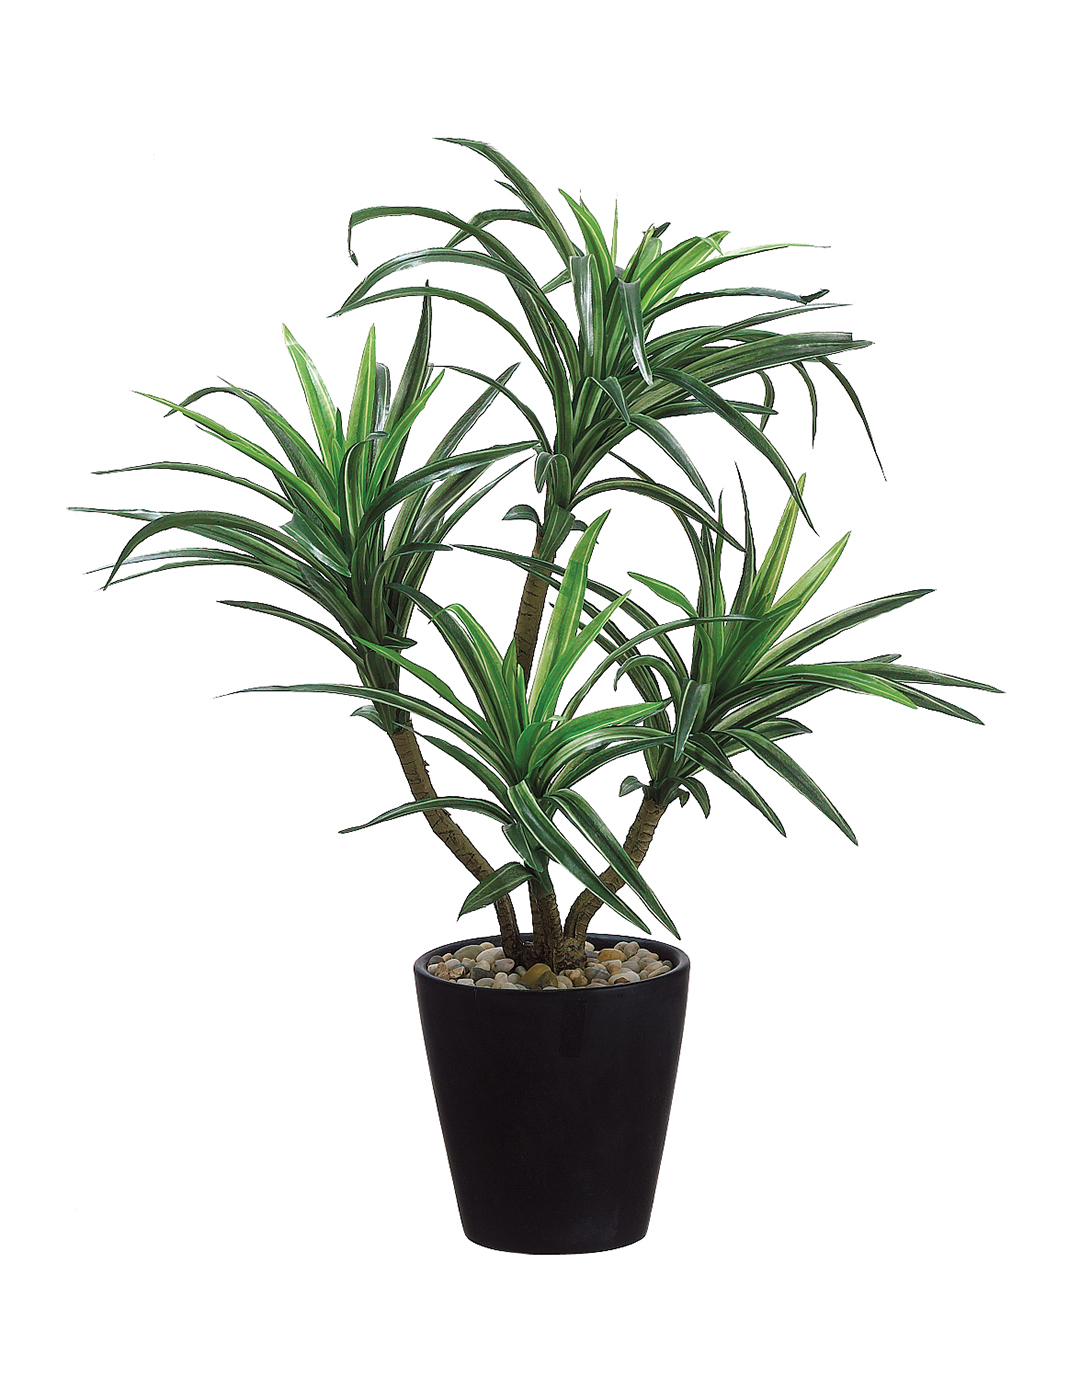 "Dracaena Plant in Pot 20""H"